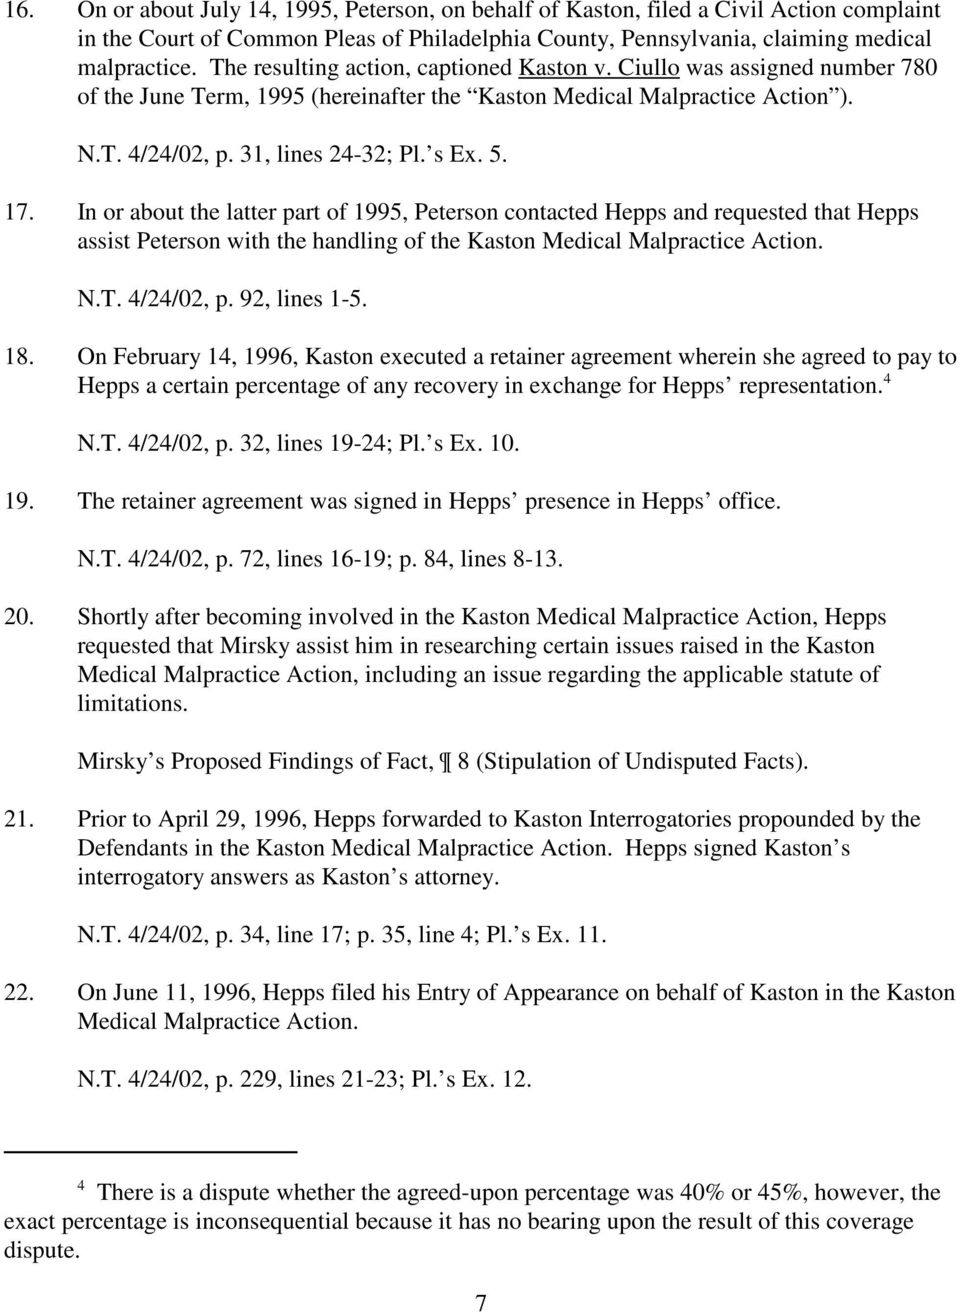 In or about the latter part of 1995, Peterson contacted Hepps and requested that Hepps assist Peterson with the handling of the Kaston Medical Malpractice Action. N.T. 4/24/02, p. 92, lines 1-5. 18.